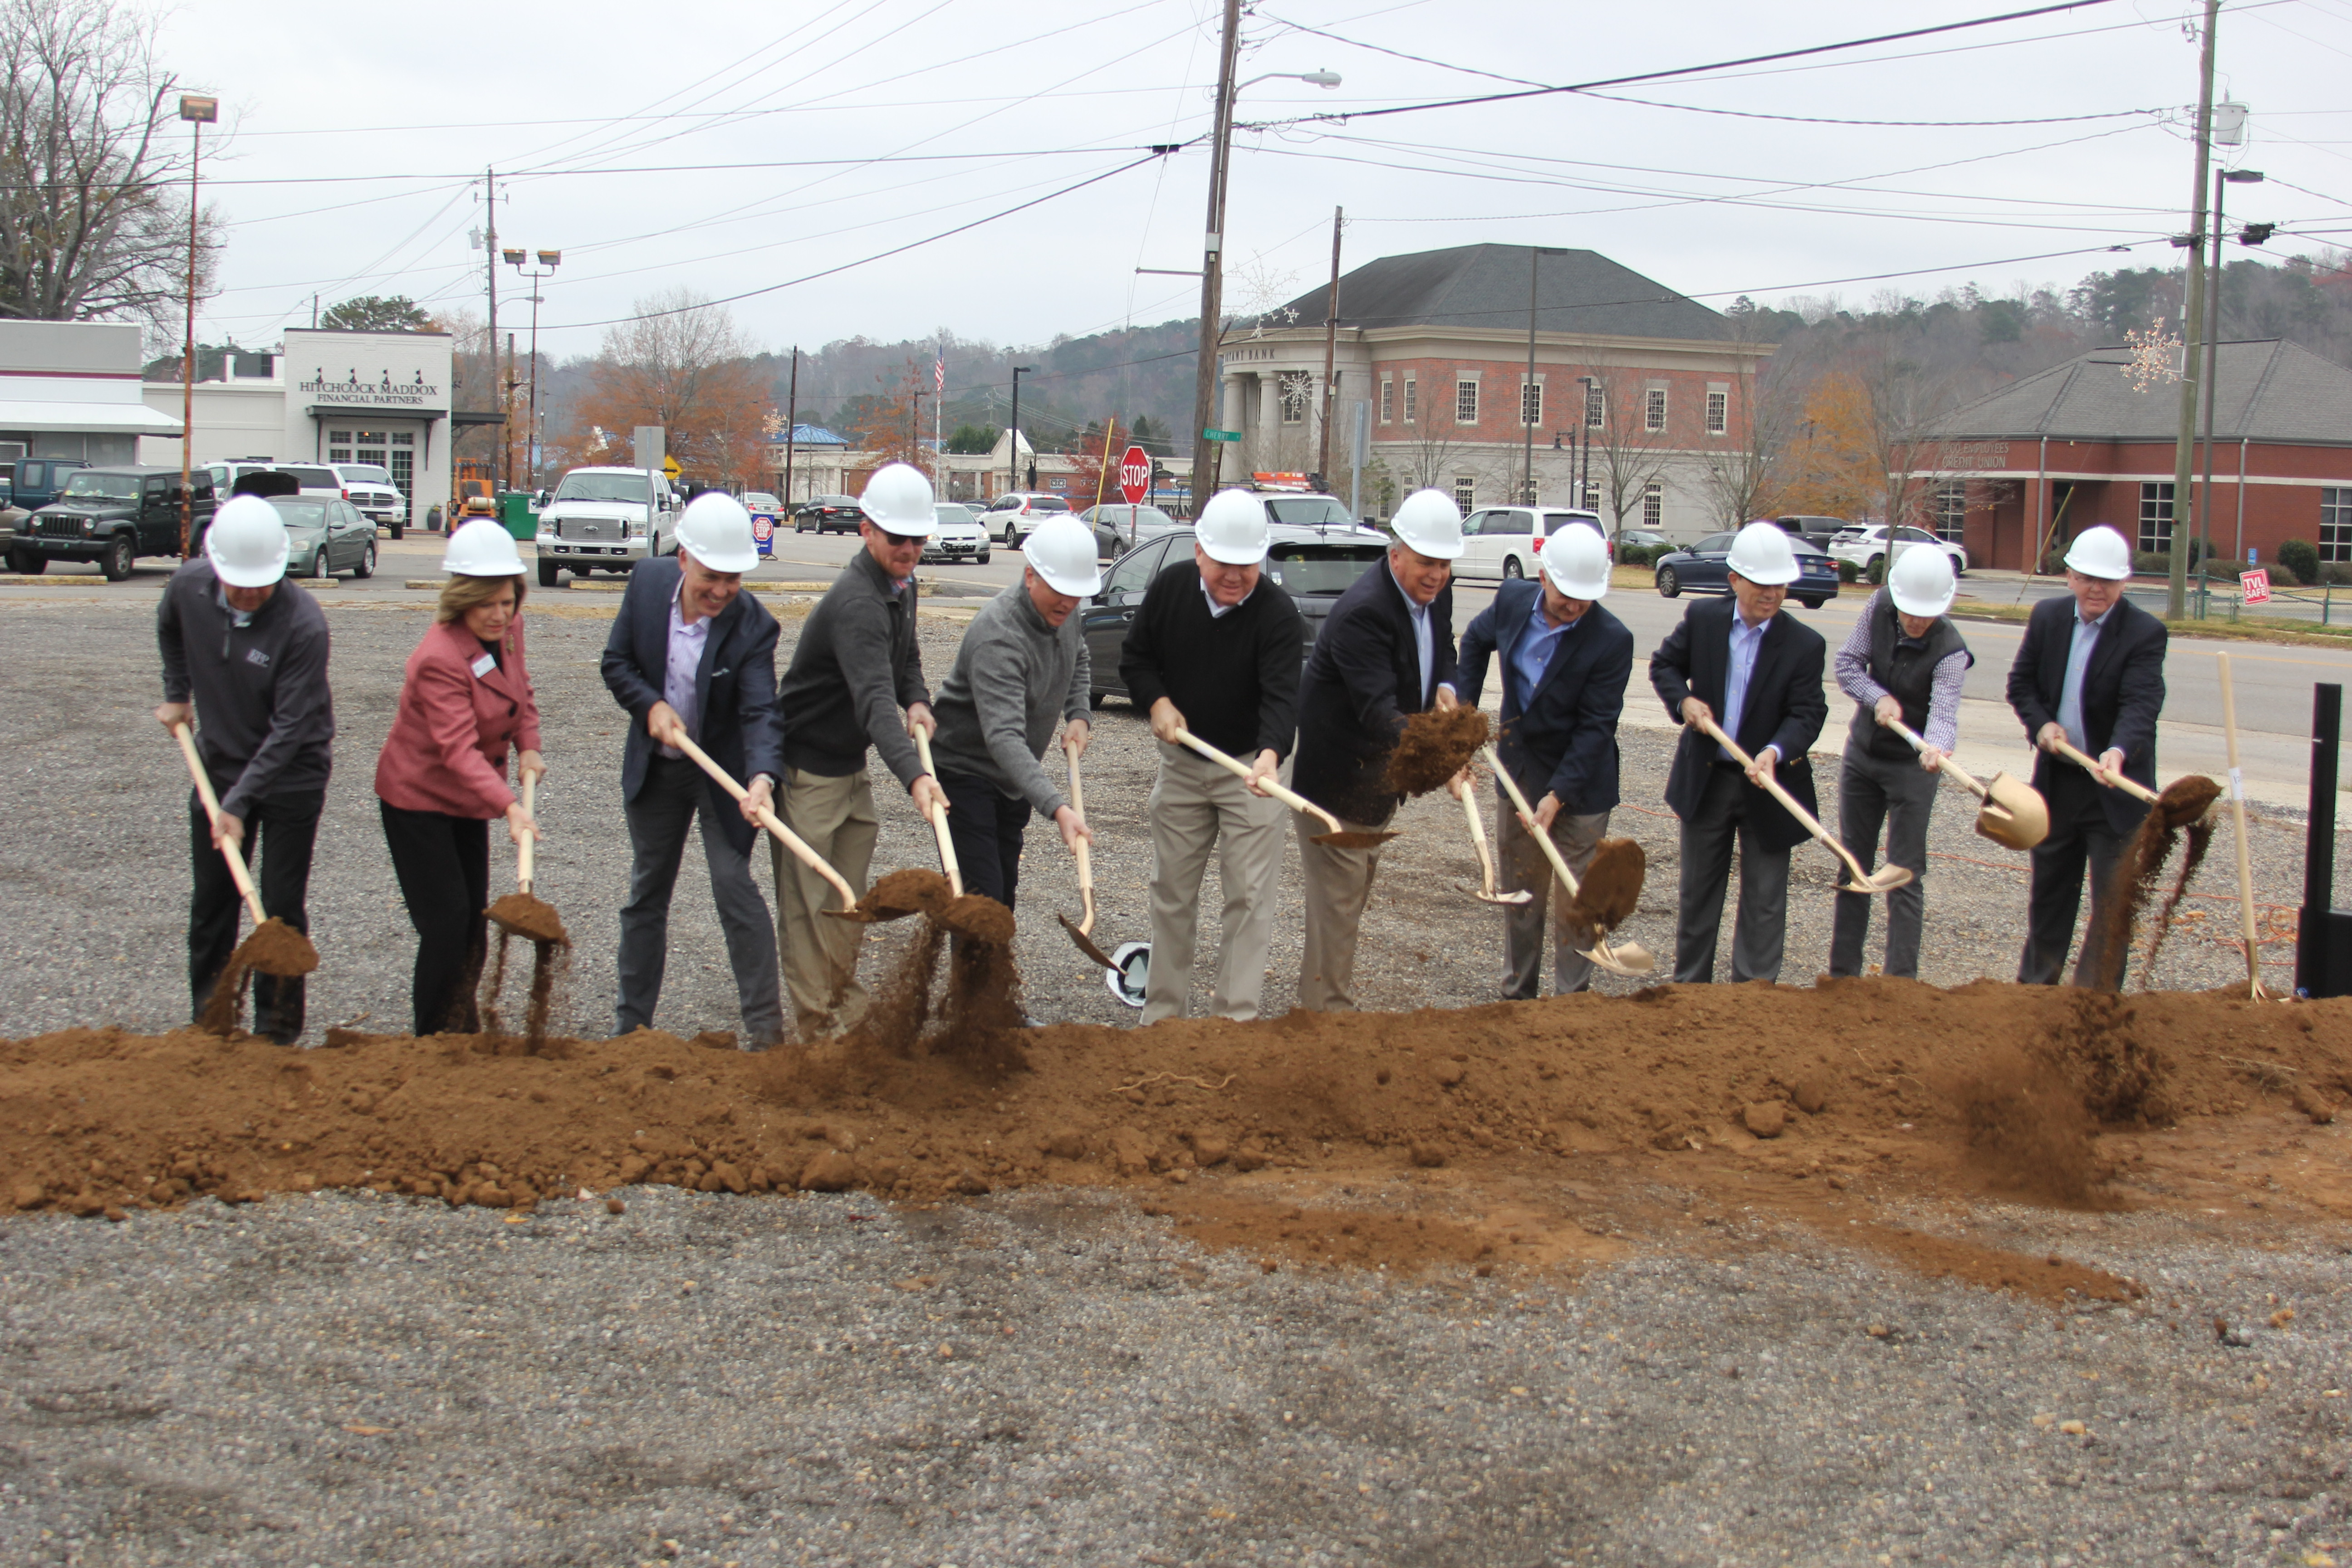 City of Trussville hosts groundbreaking for new Edgar's Bakery location